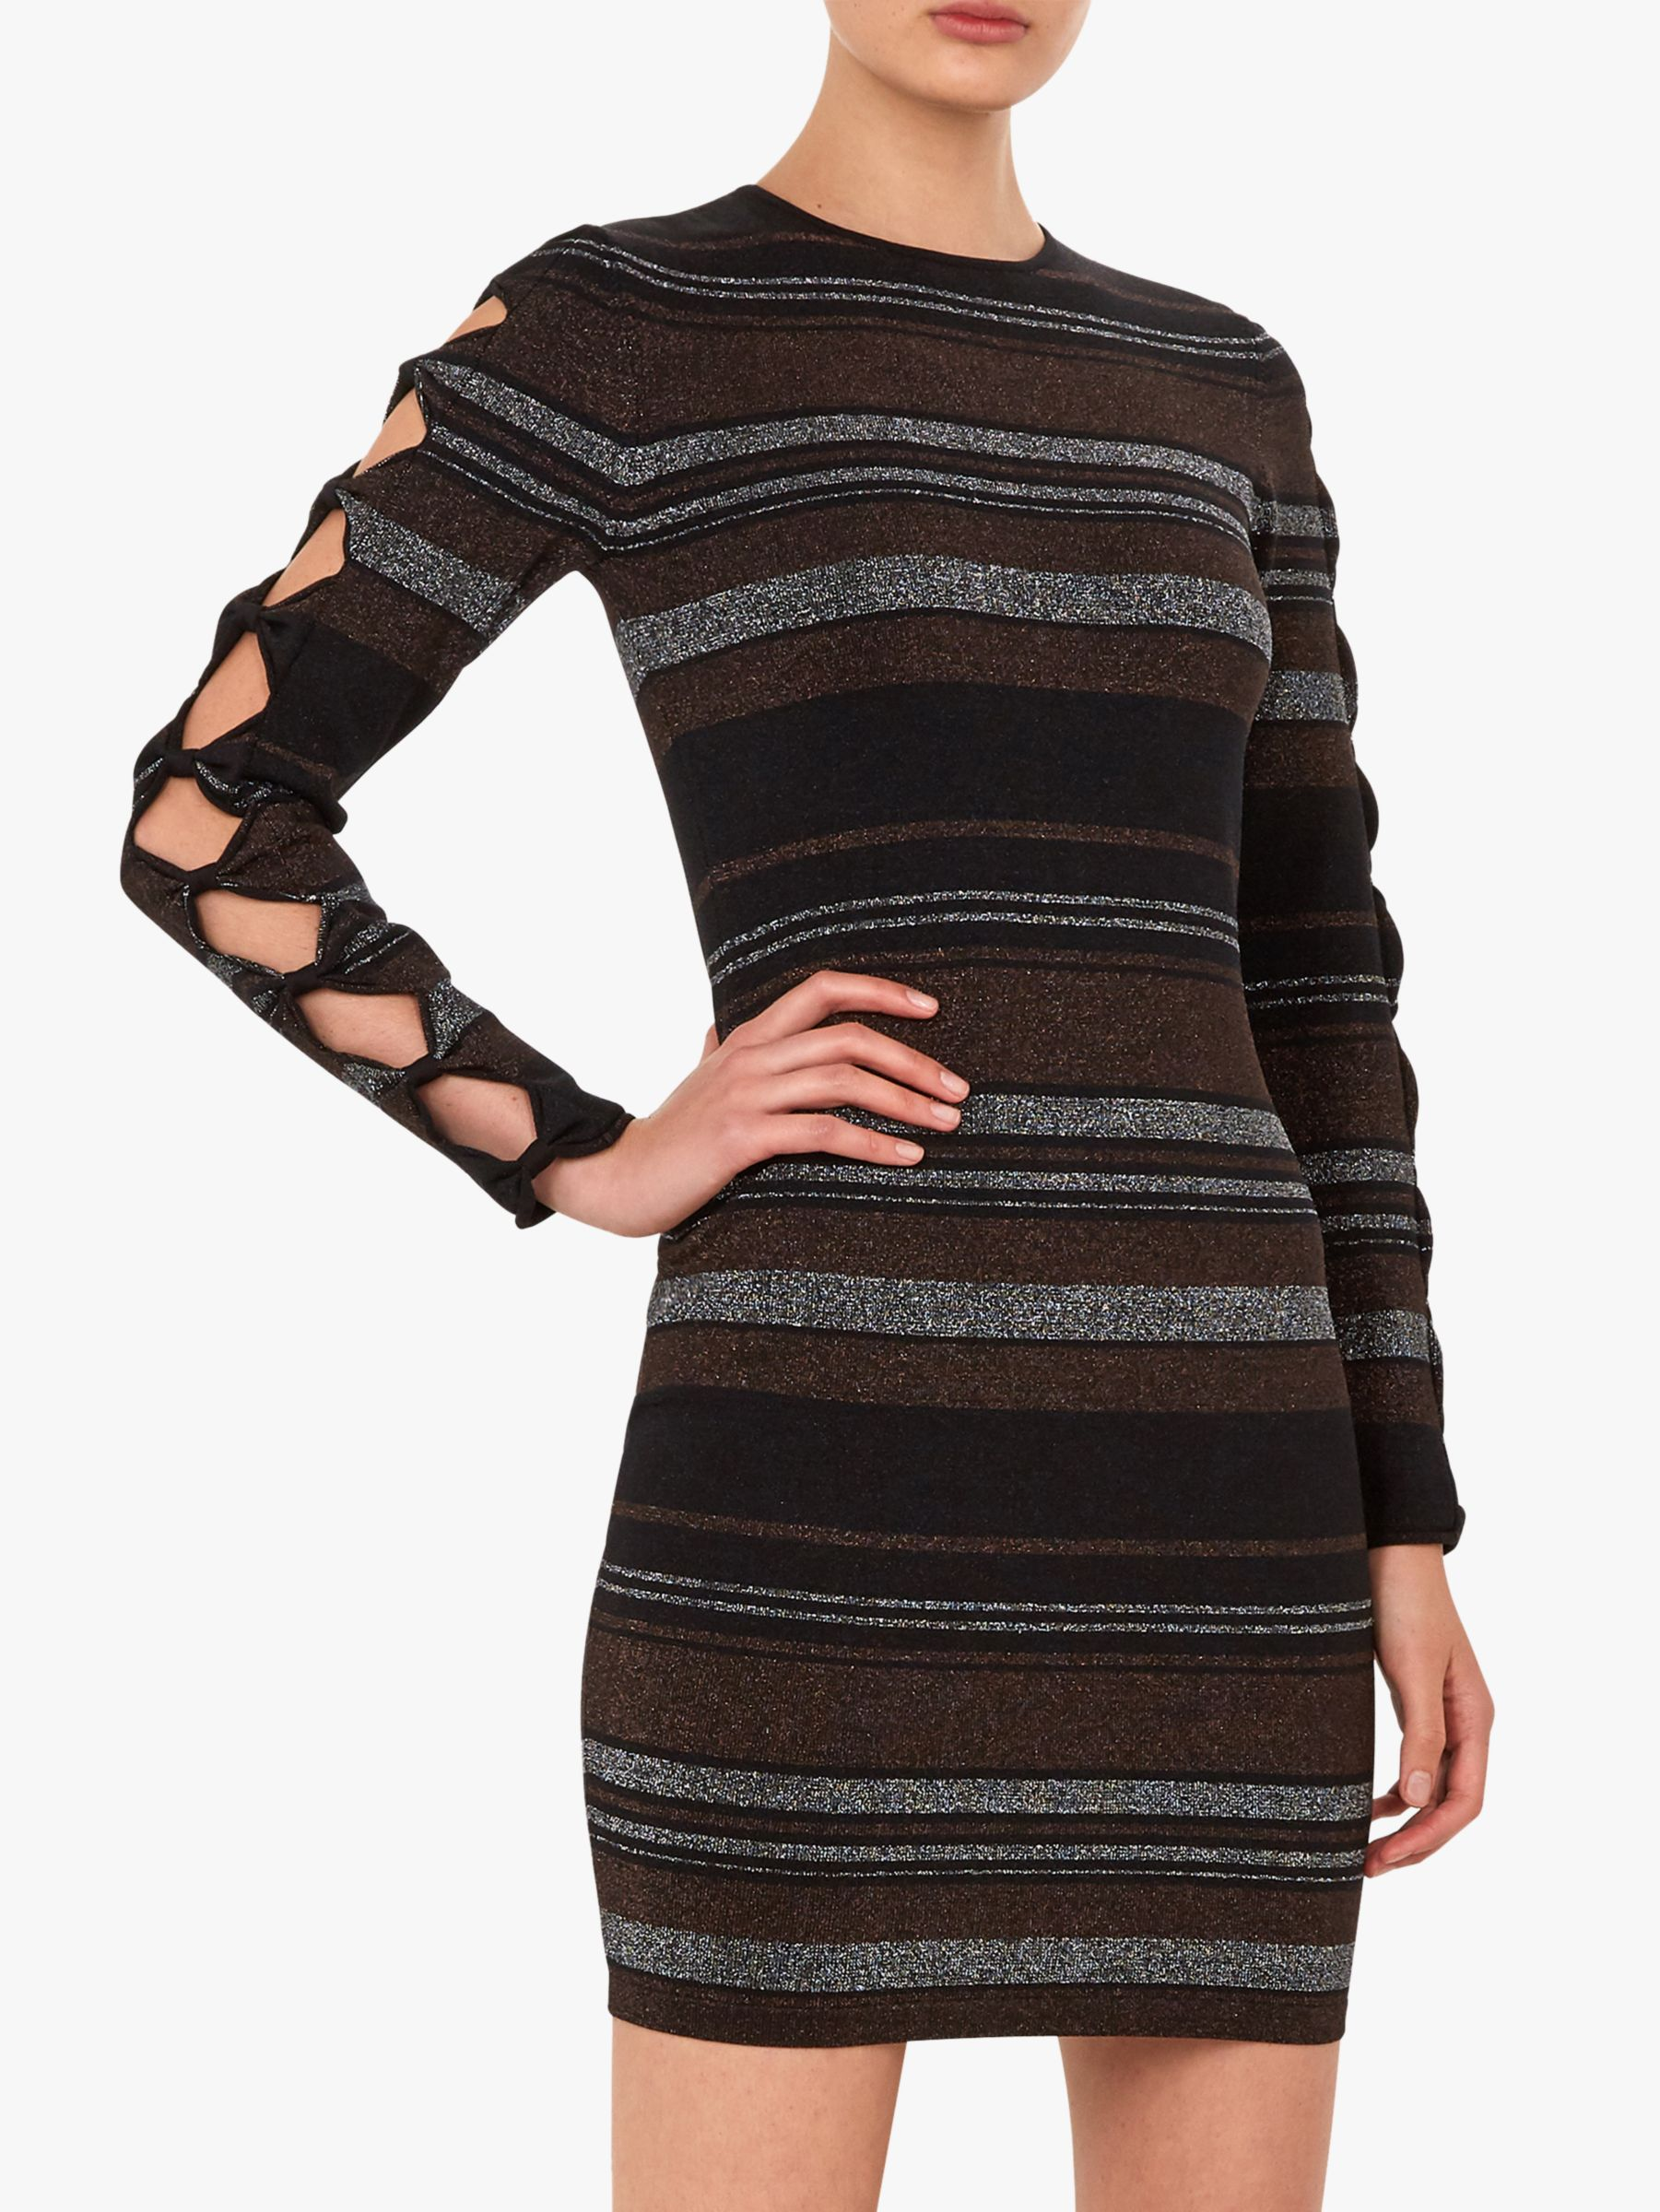 a31cae29039 Ted Baker Simona Bow Detail Knitted Bodycon Dress